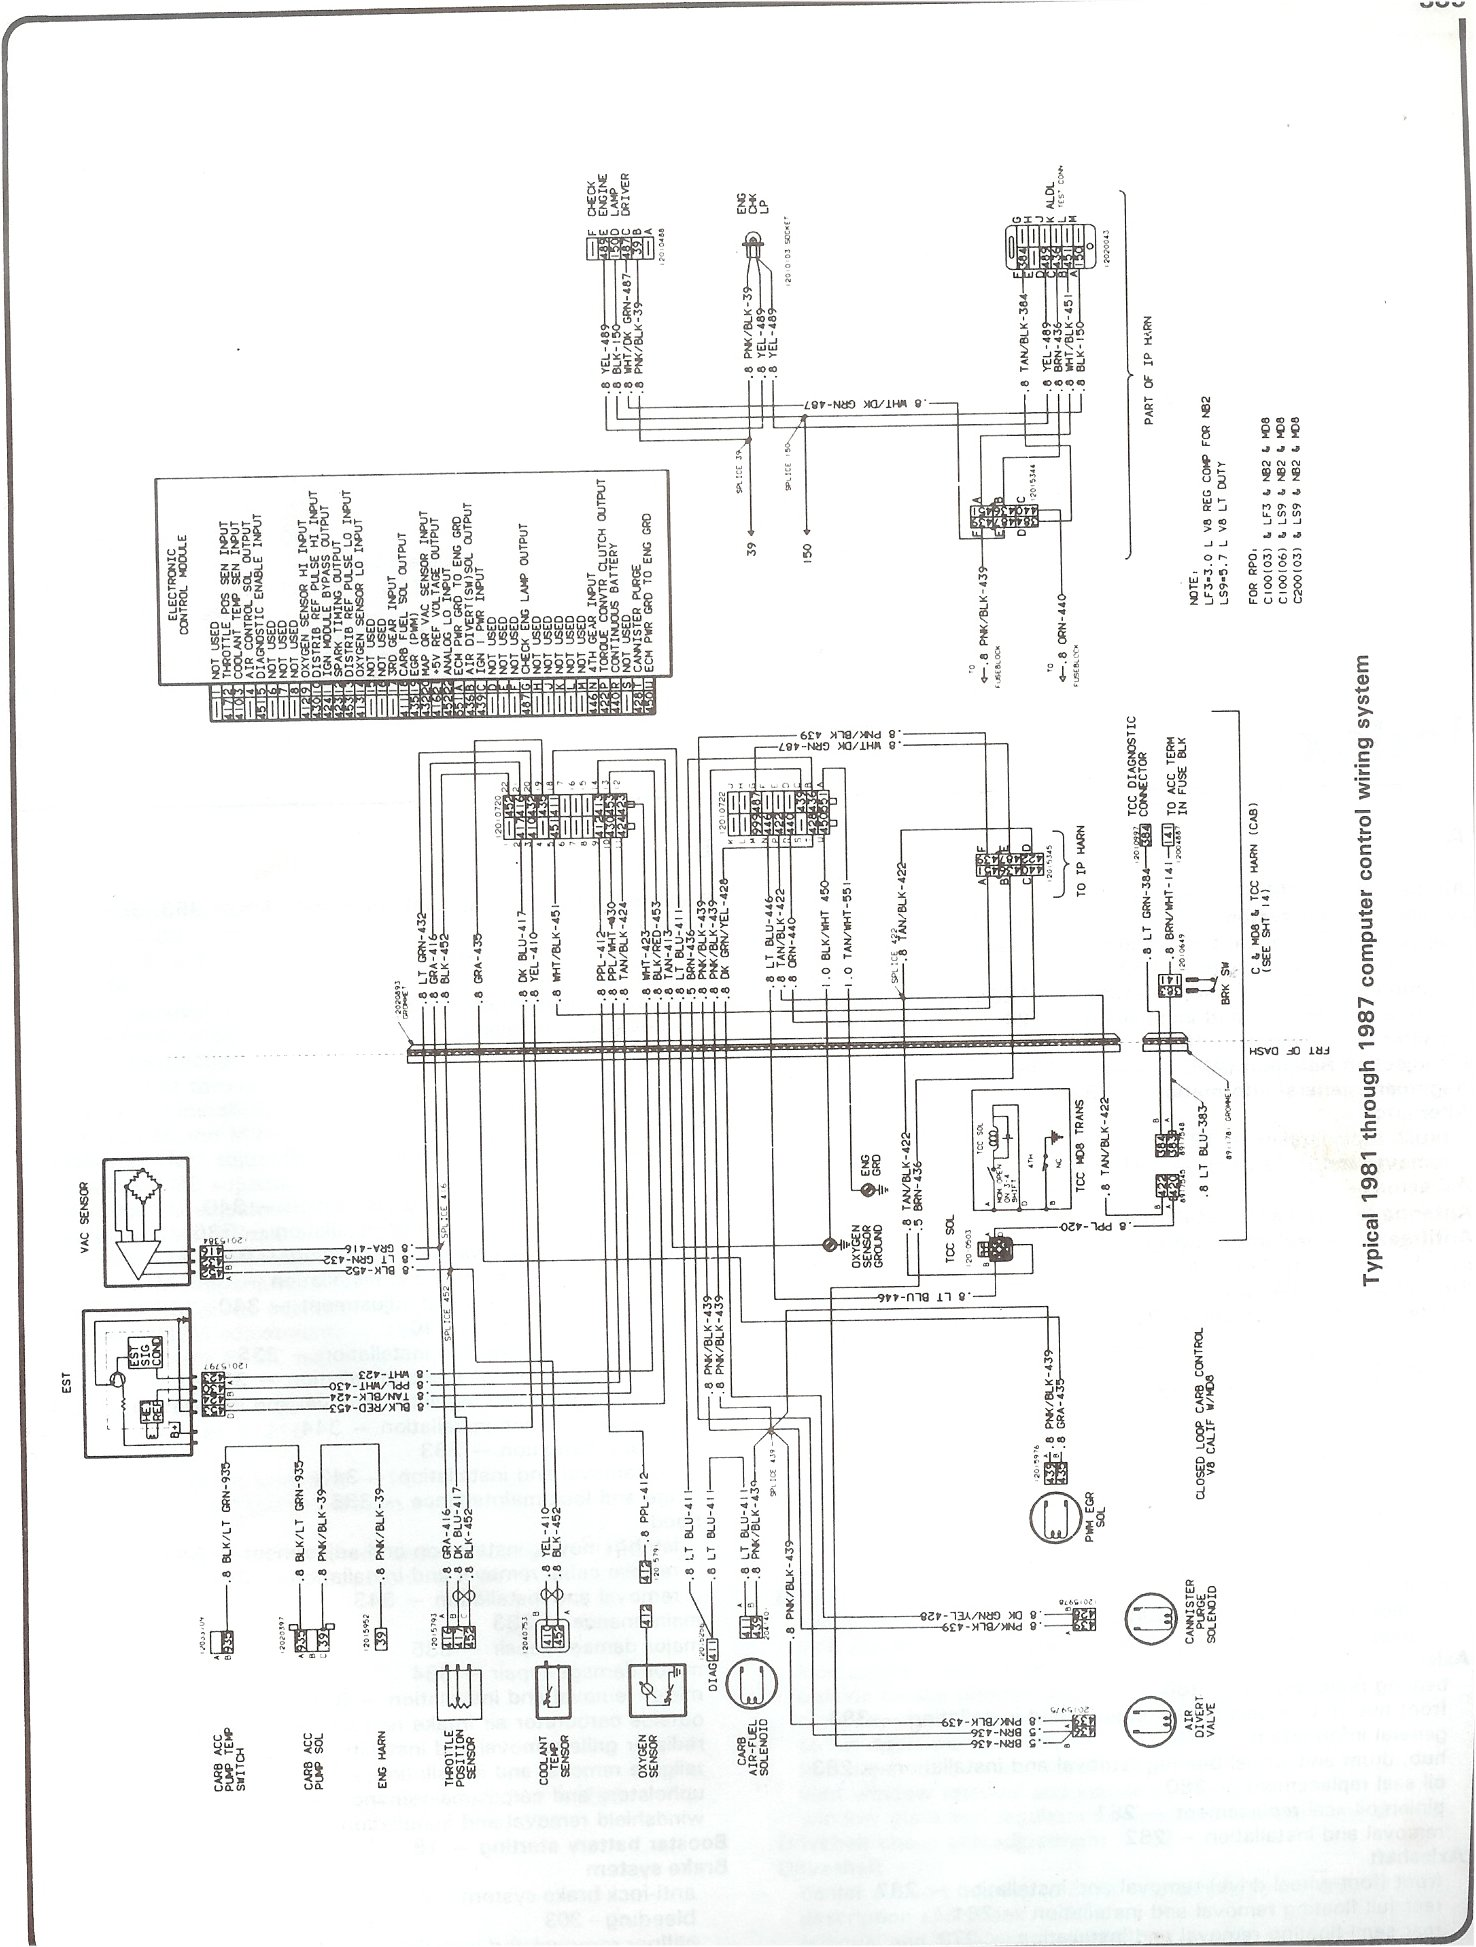 81 87_computer_control_wiring complete 73 87 wiring diagrams chevy truck wiring diagram at fashall.co